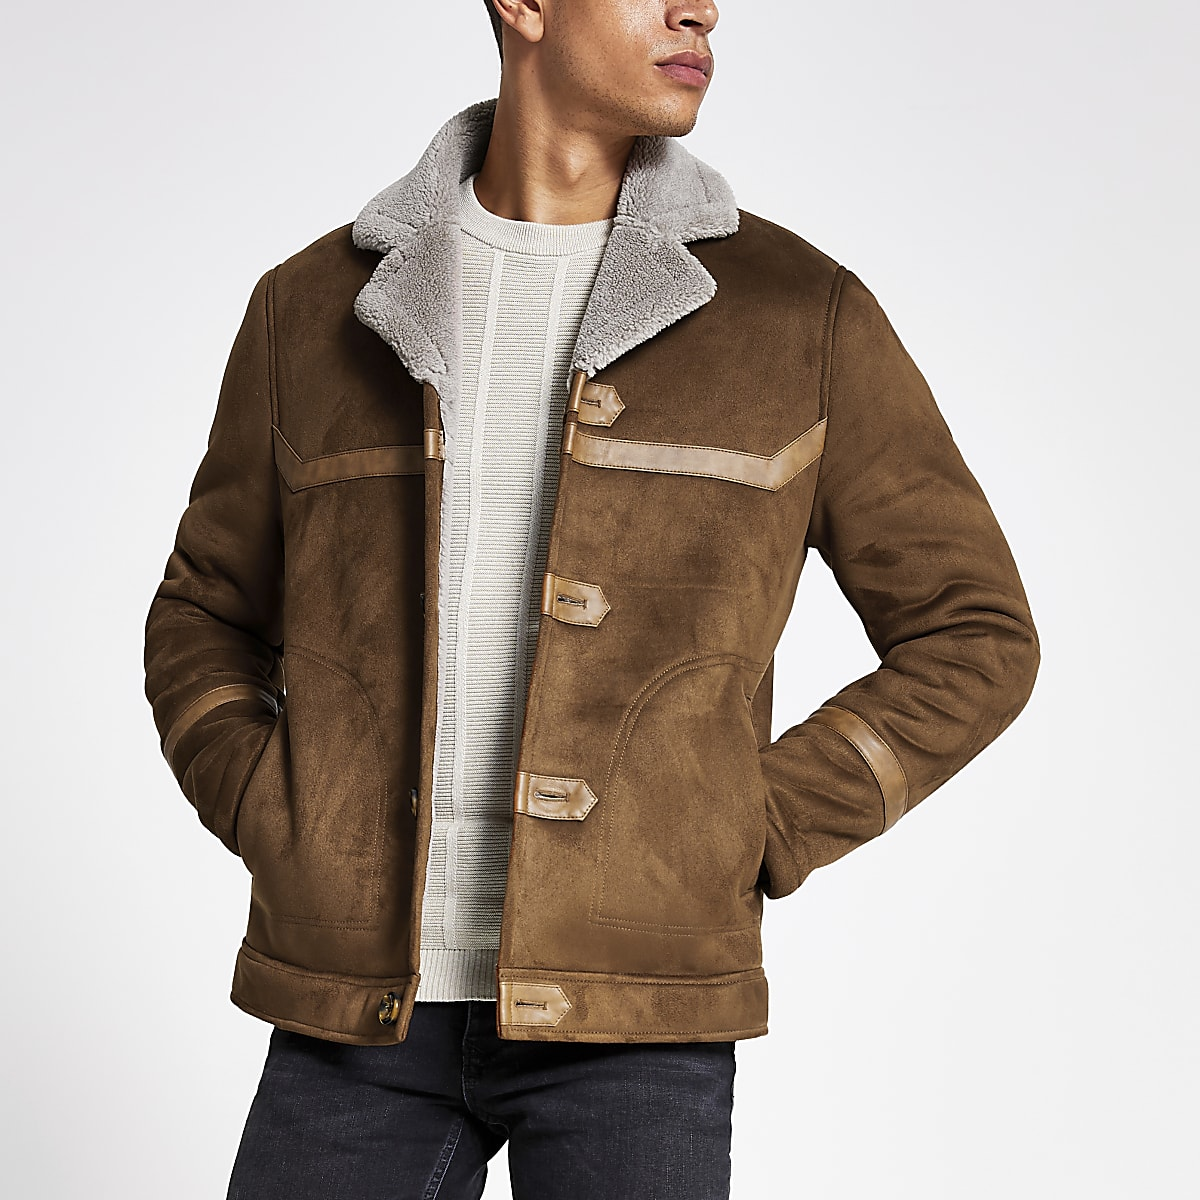 Tan faux suede shearling jacket